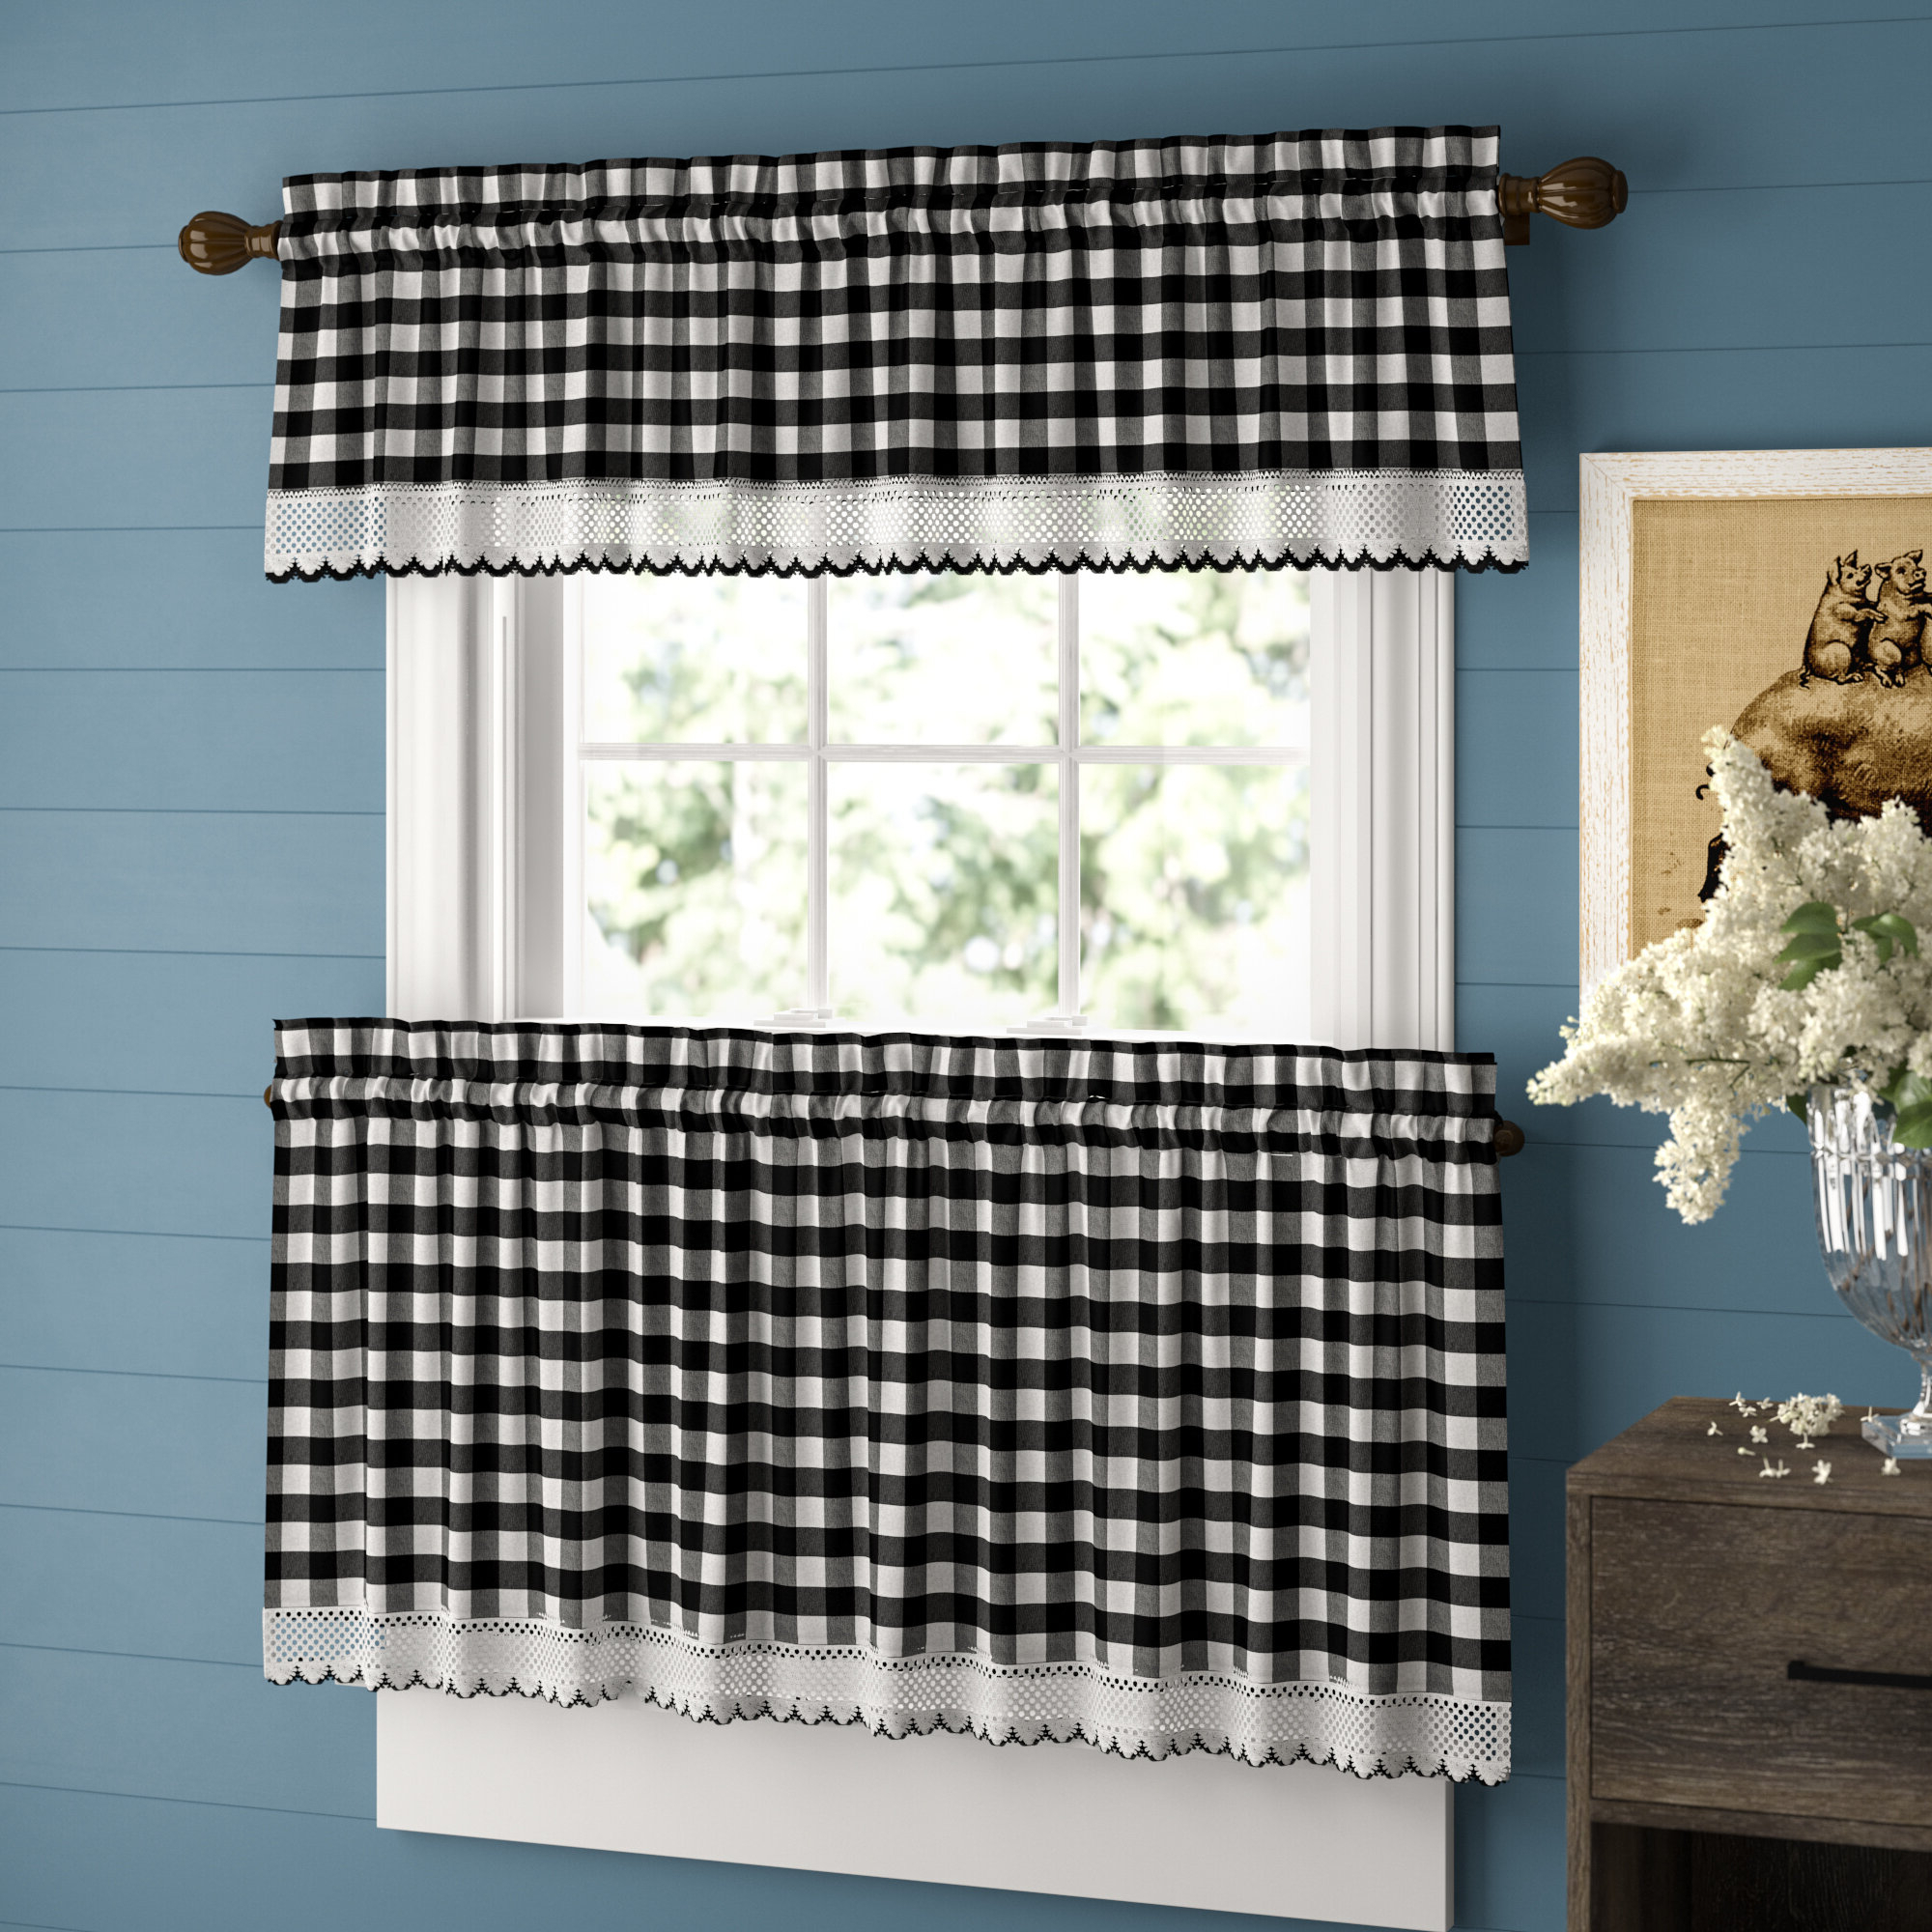 Trendy Classic Navy Cotton Blend Buffalo Check Kitchen Curtain Sets Throughout Bellair Country Plaid Complete 3 Piece Tier & Valance Kitchen Curtain (View 20 of 20)